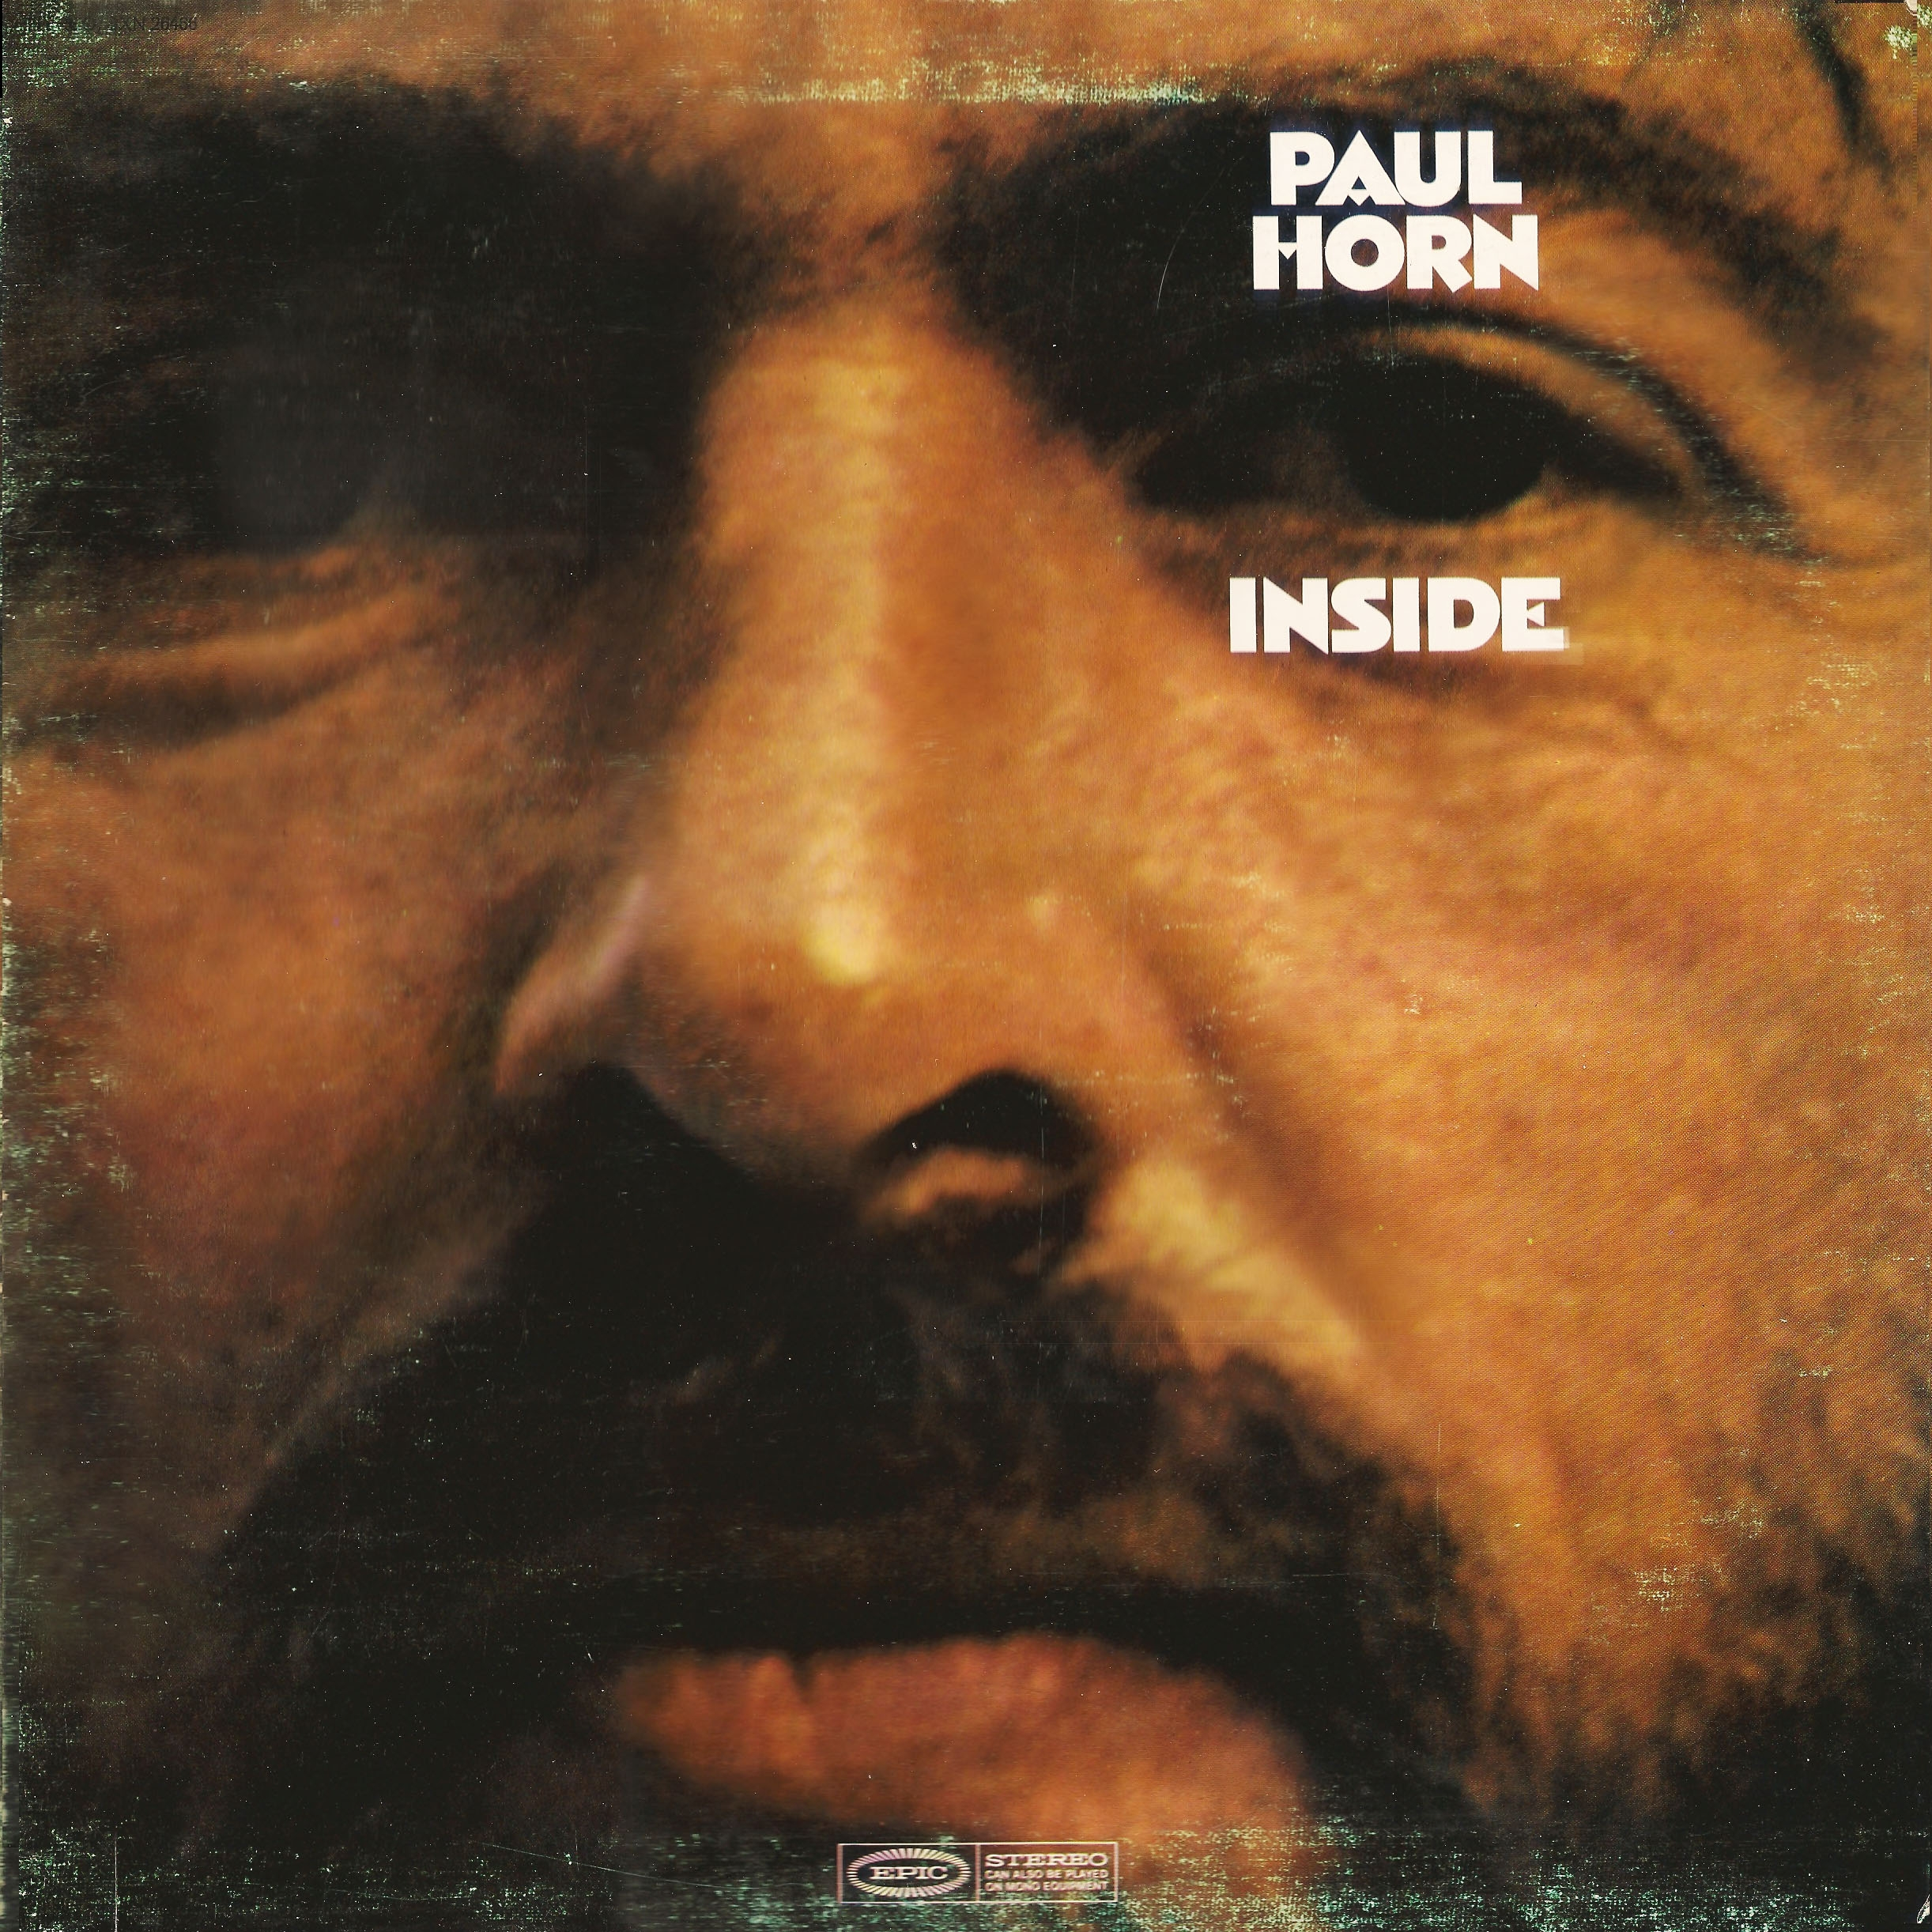 Paul Horn - Inside - Original Cover Image